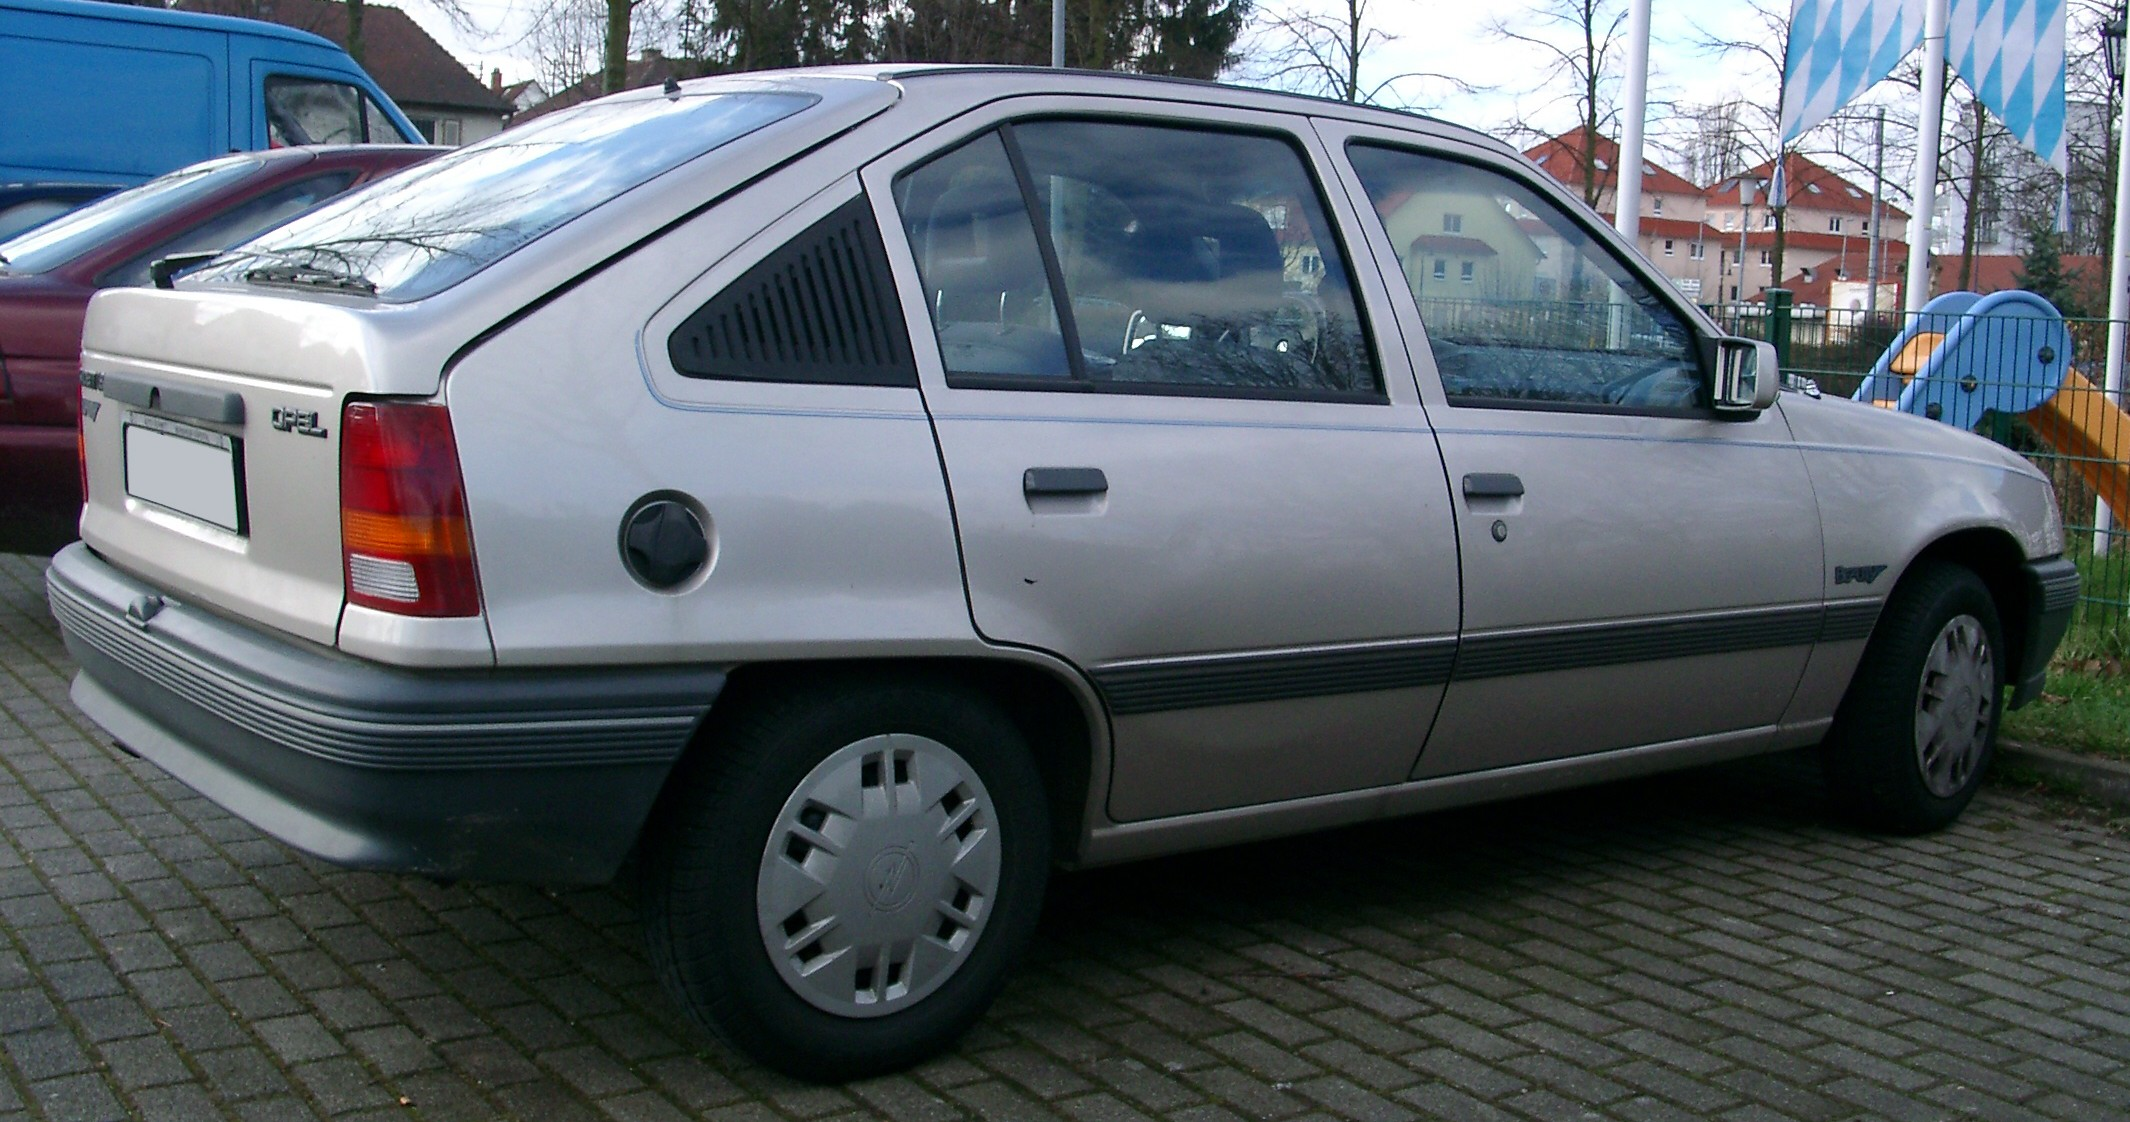 File:Opel Kadett E side.jpg